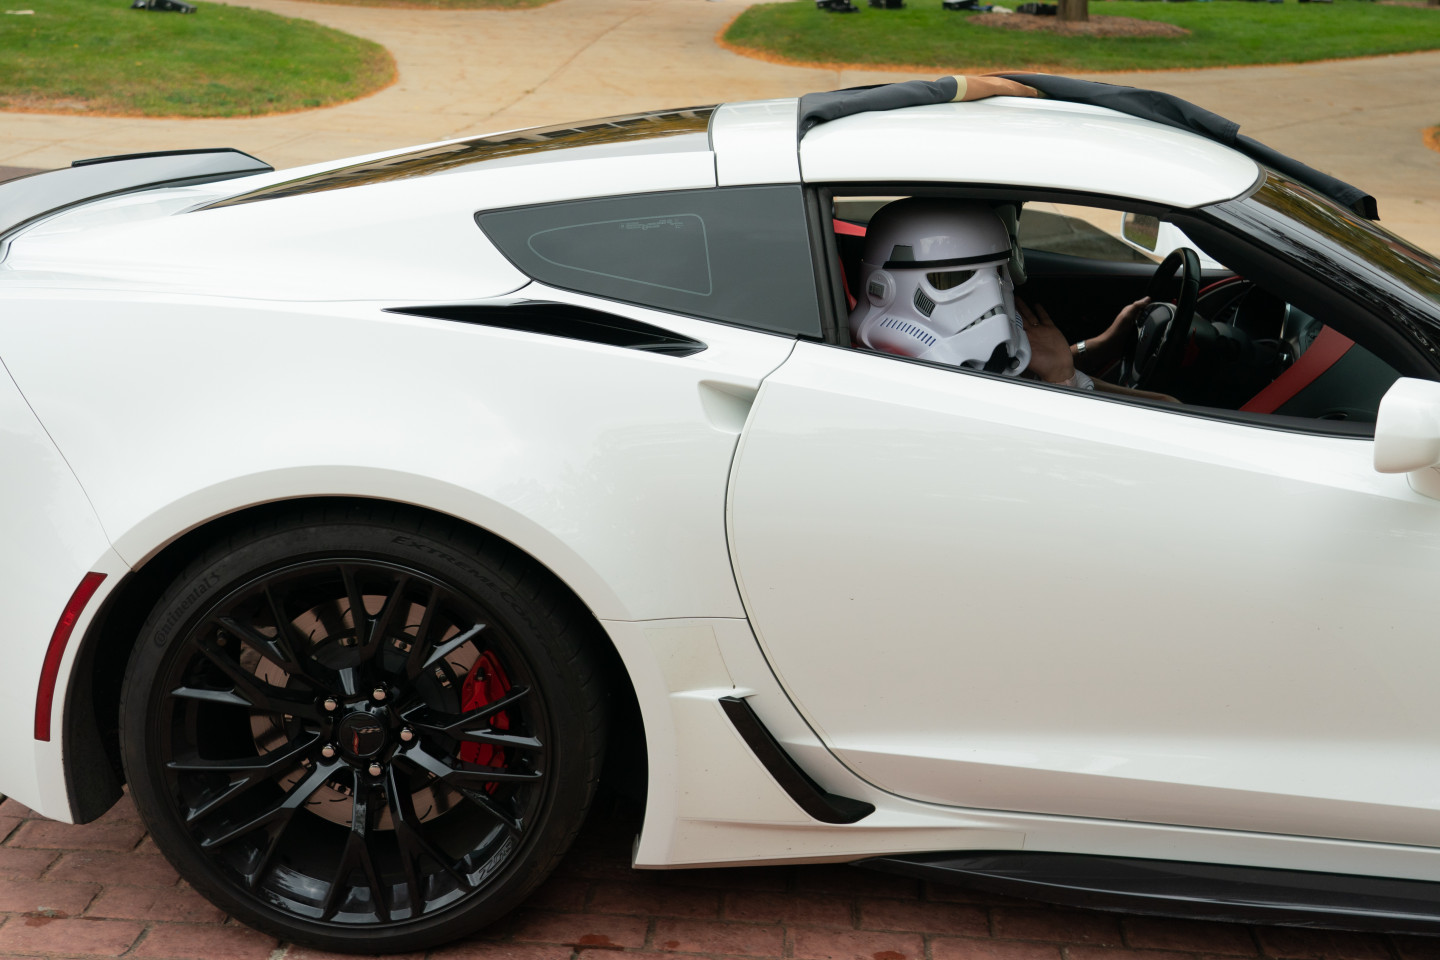 A Storm Trooper rides in the passenger seat of a car.